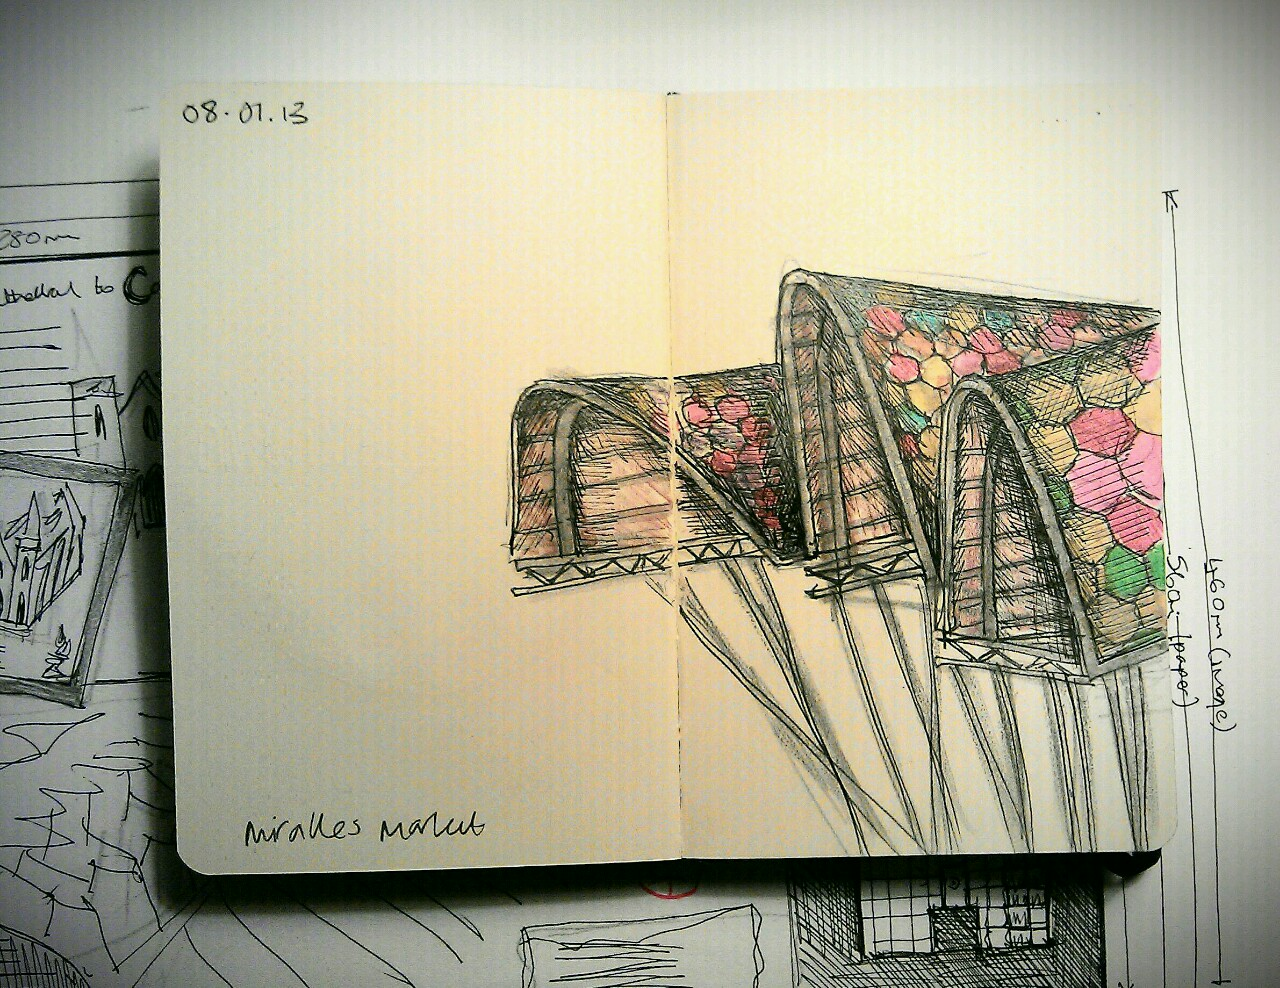 365 drawings later … day 343 … miralles market